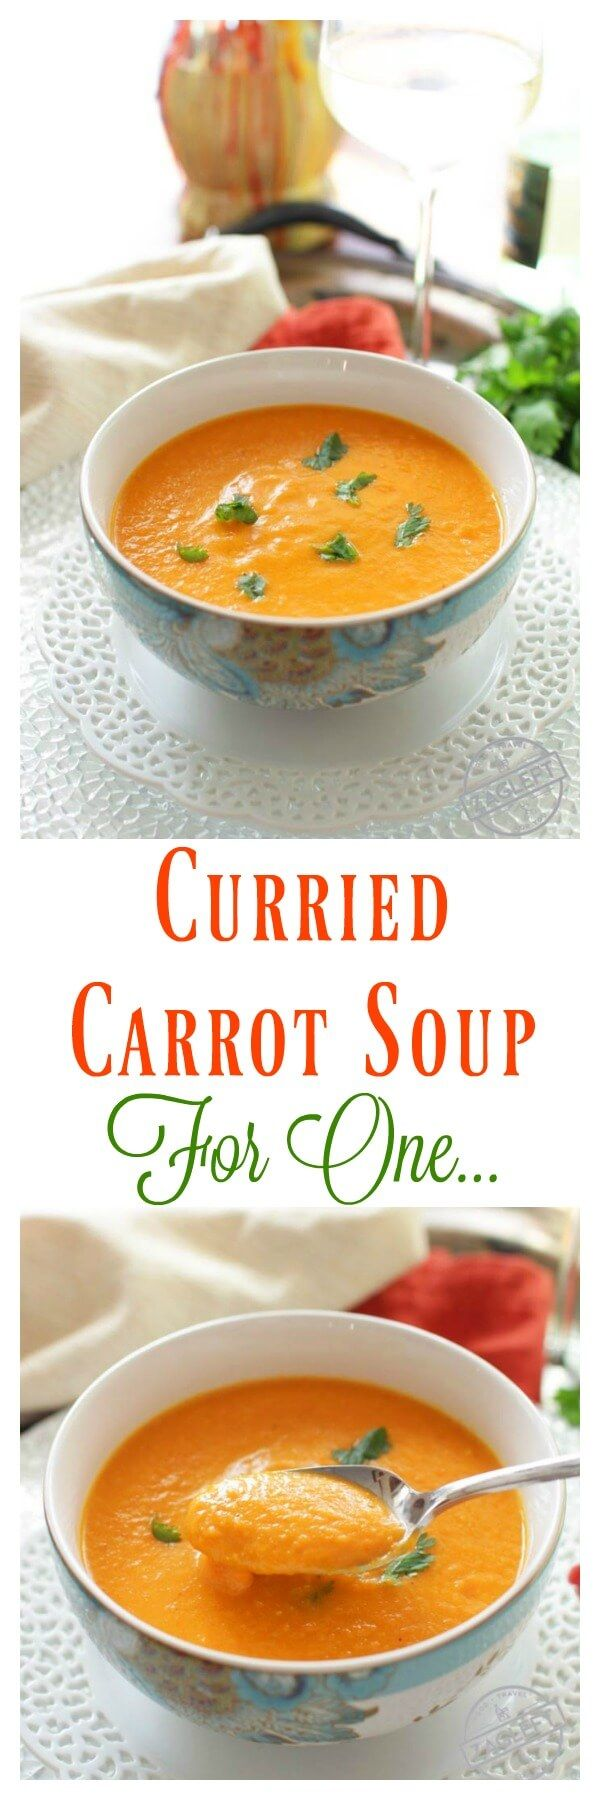 Curried Carrot Soup For One